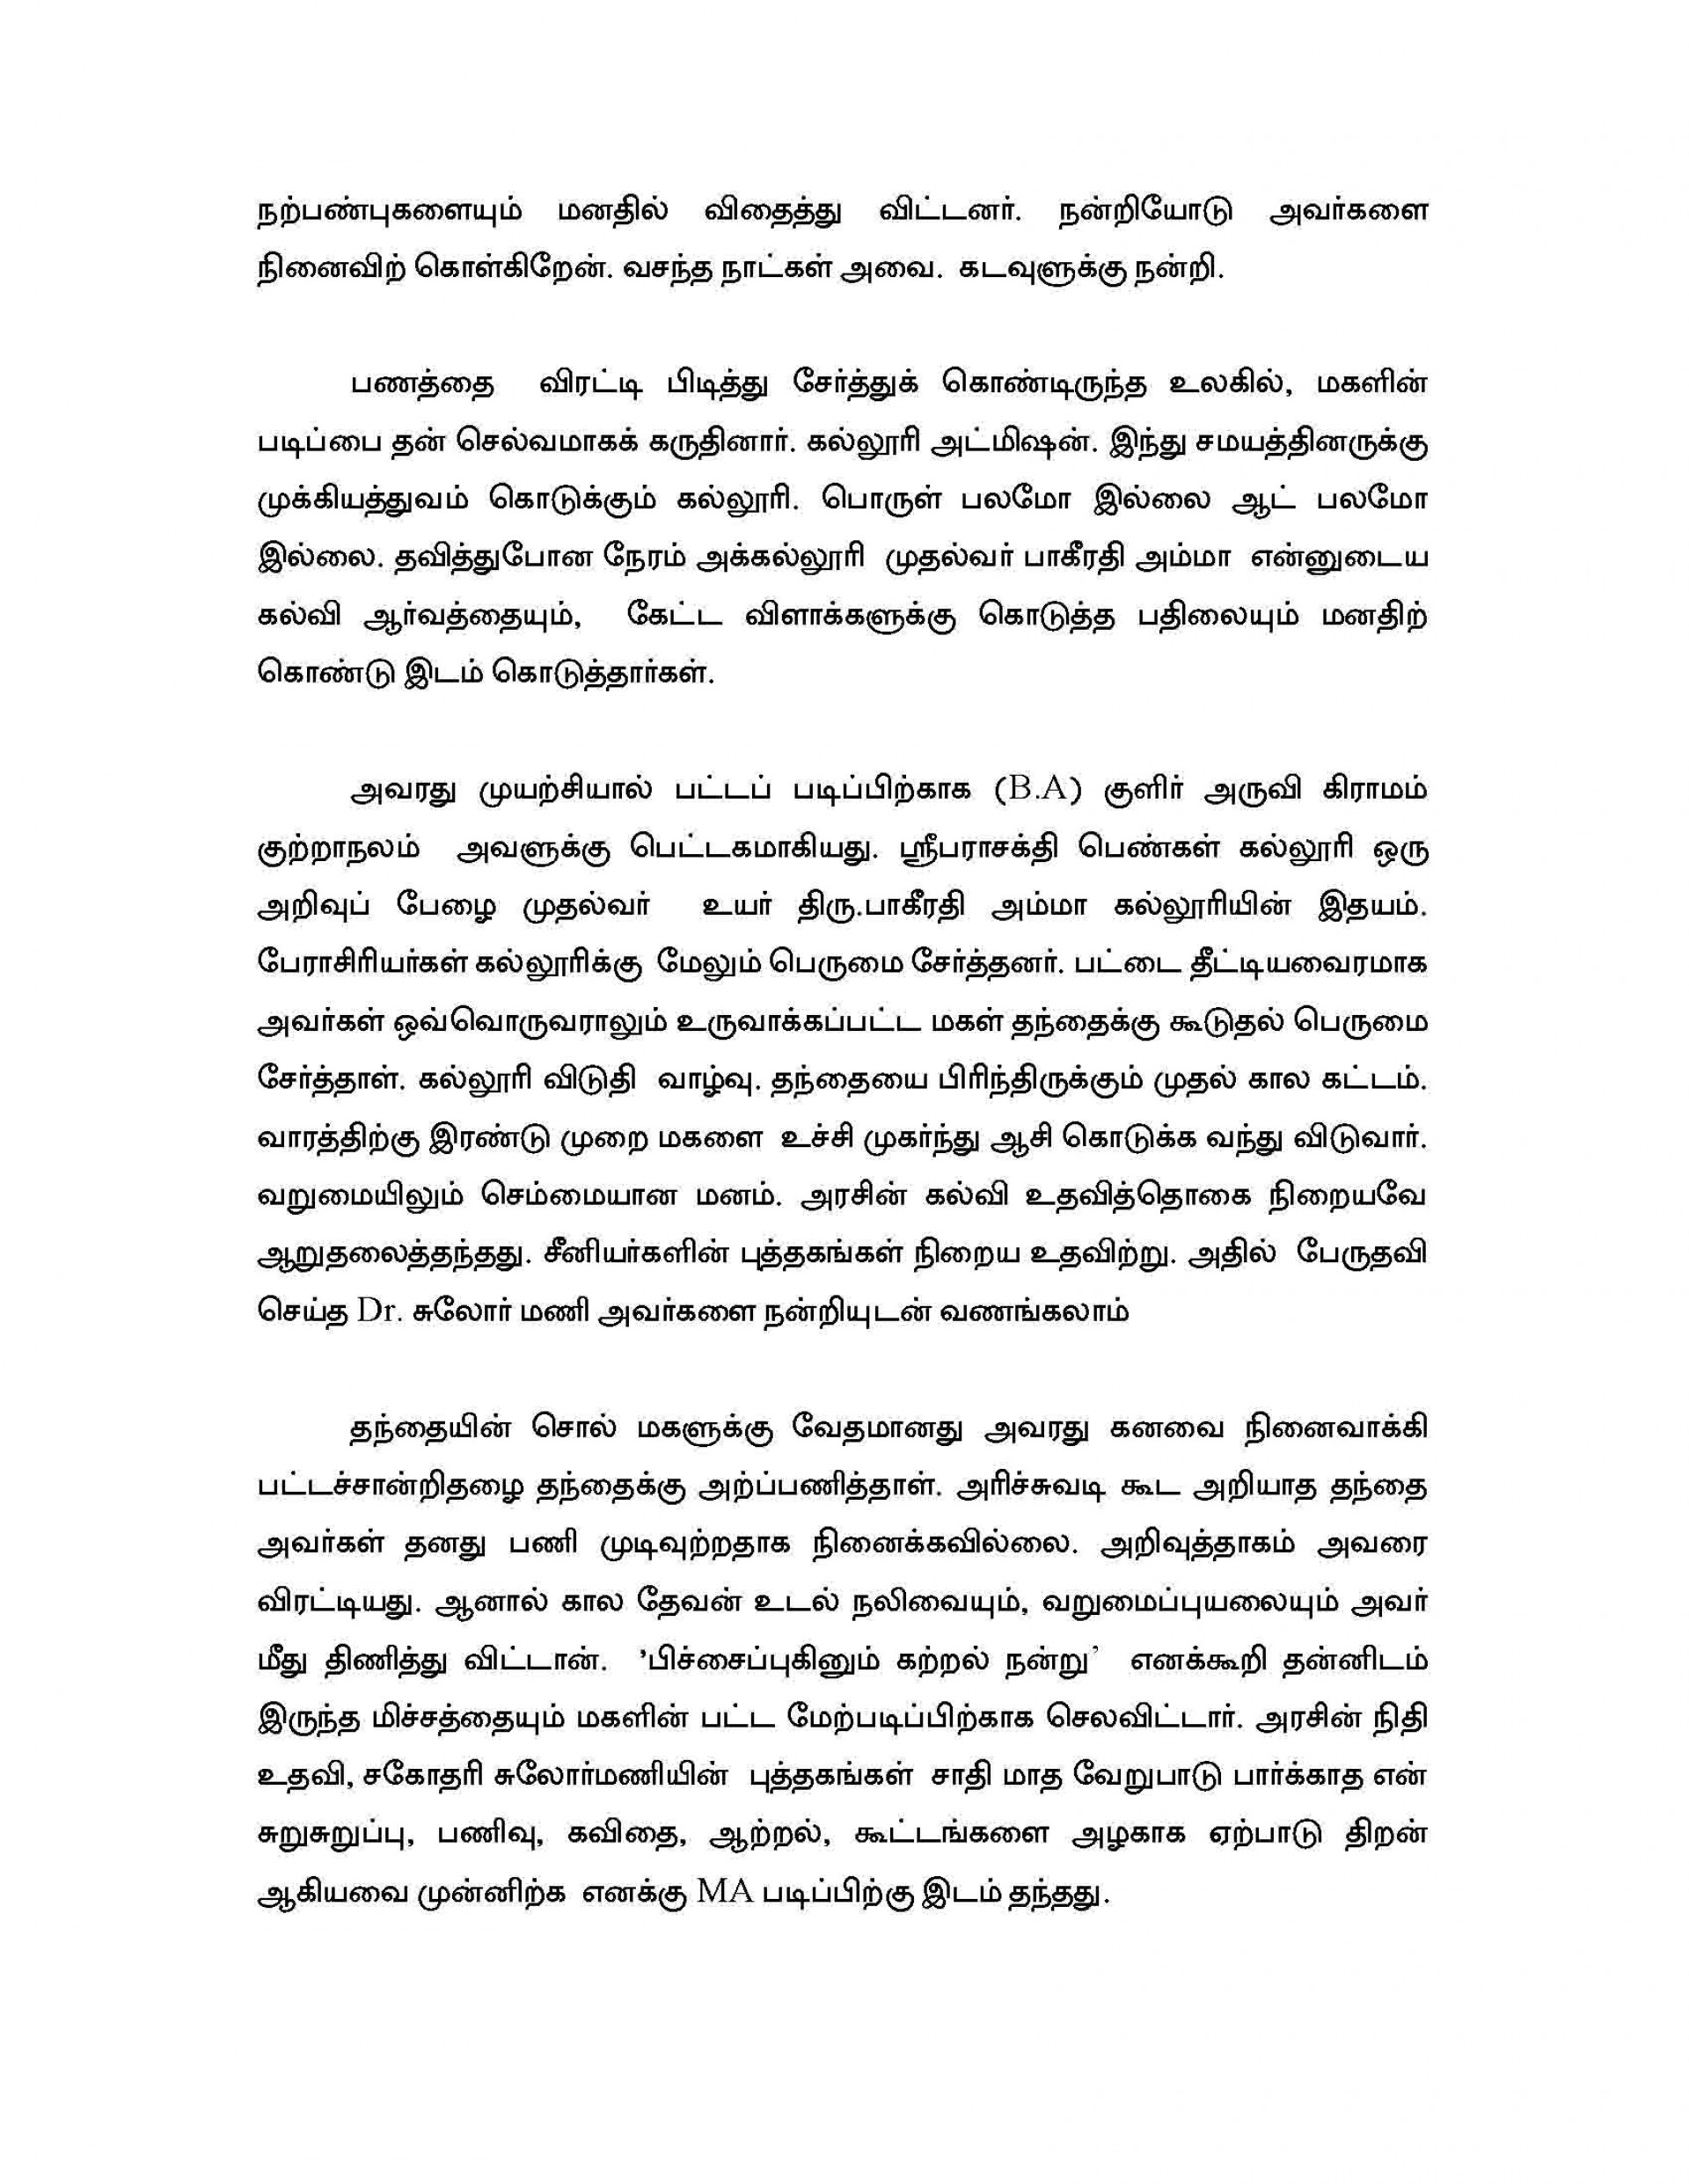 008 Tamil 1 Page 2 Essay About Family Shocking History Influence On Values First And Foremost 1920